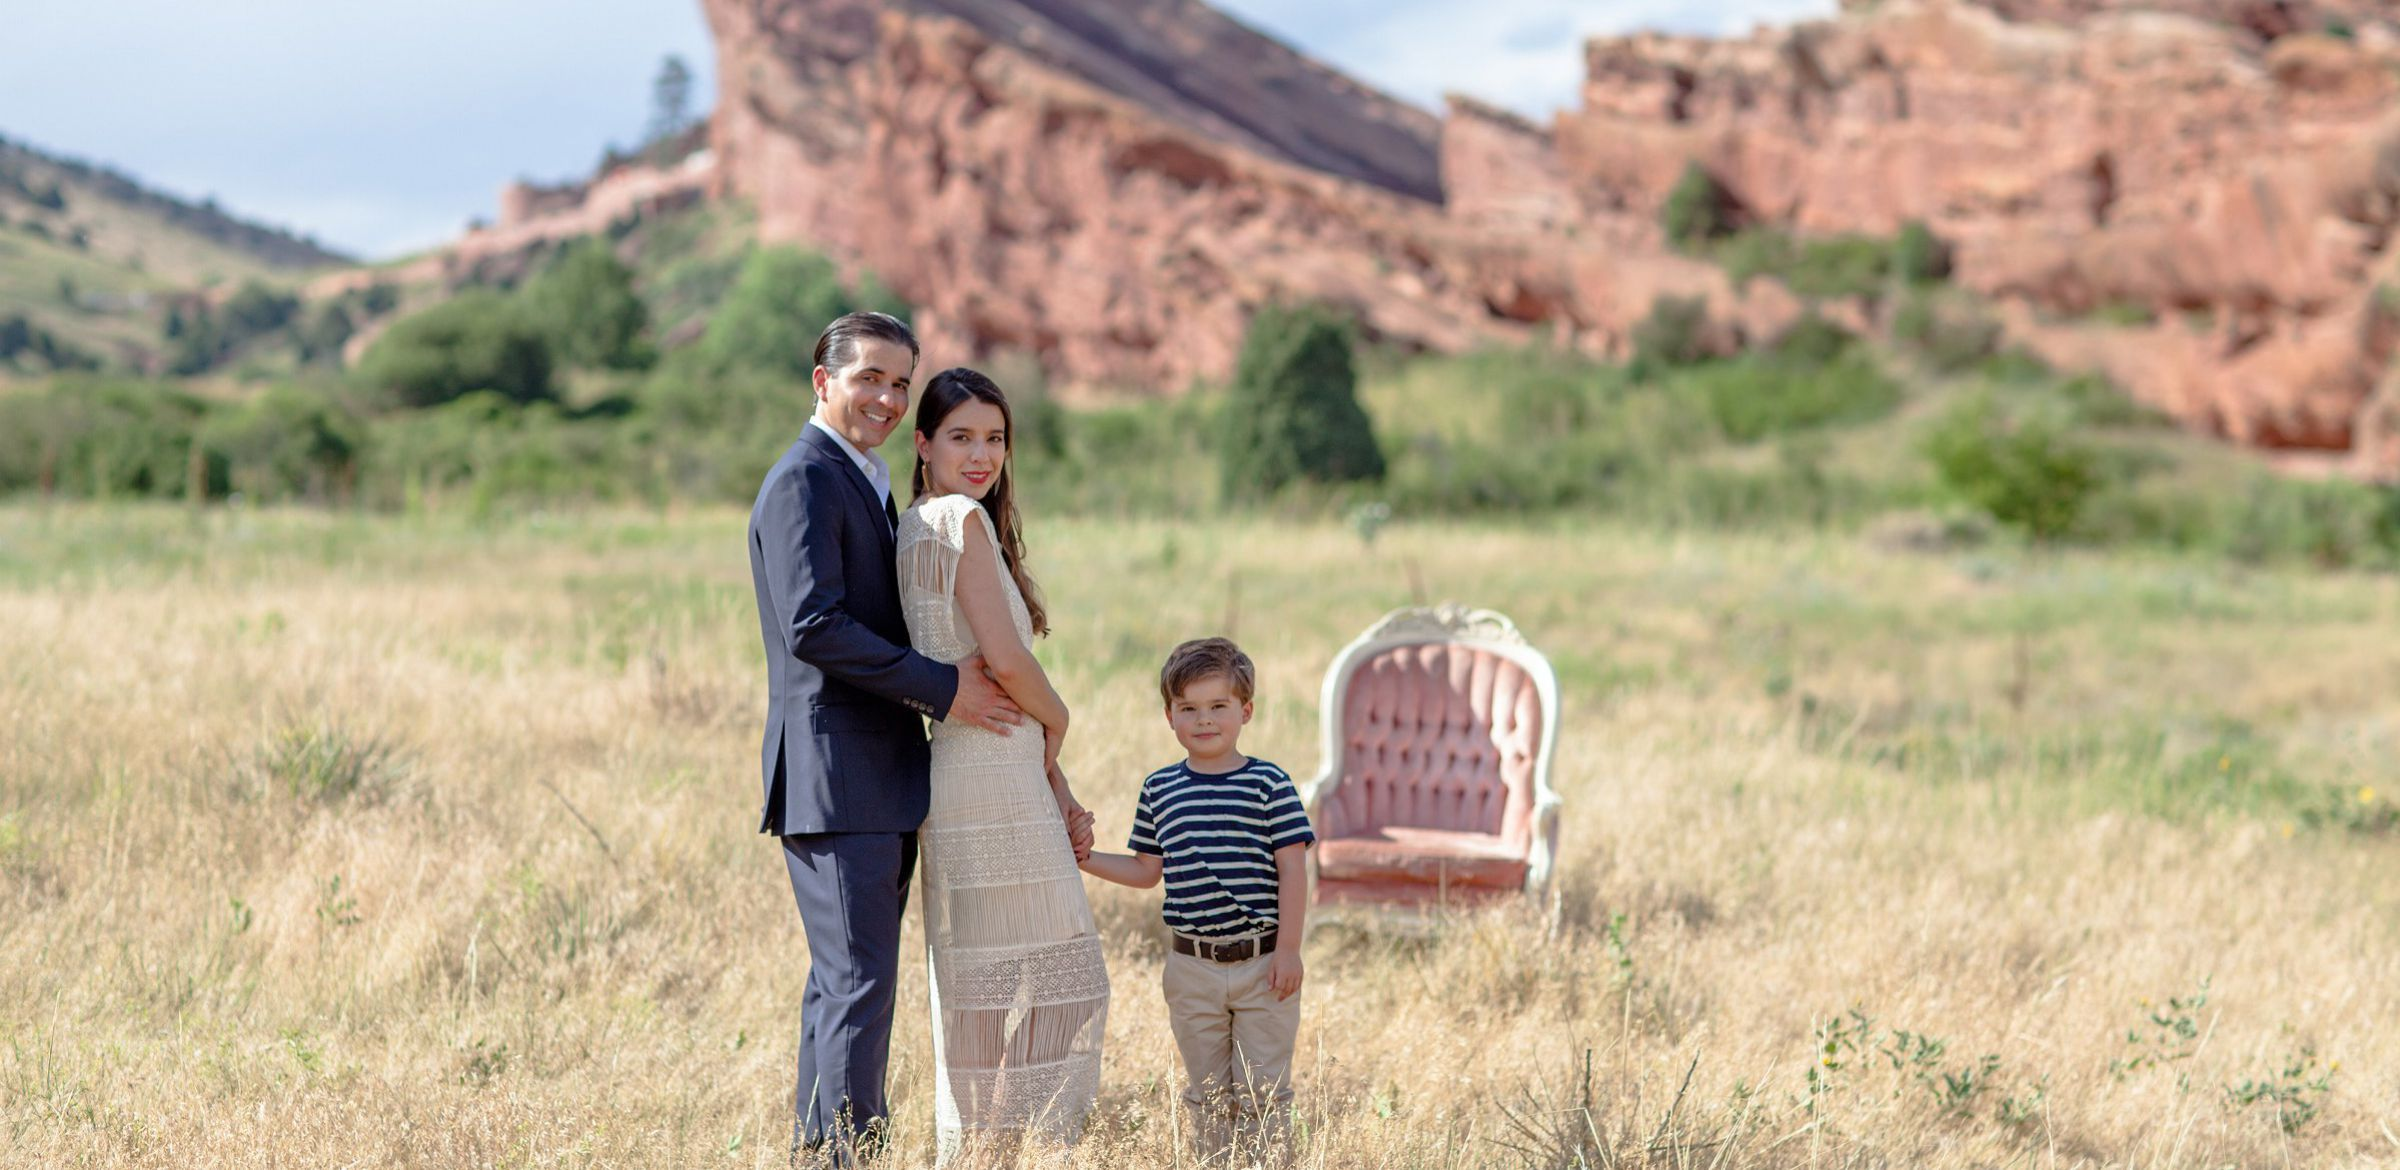 06-Denver Family Photography.jpg